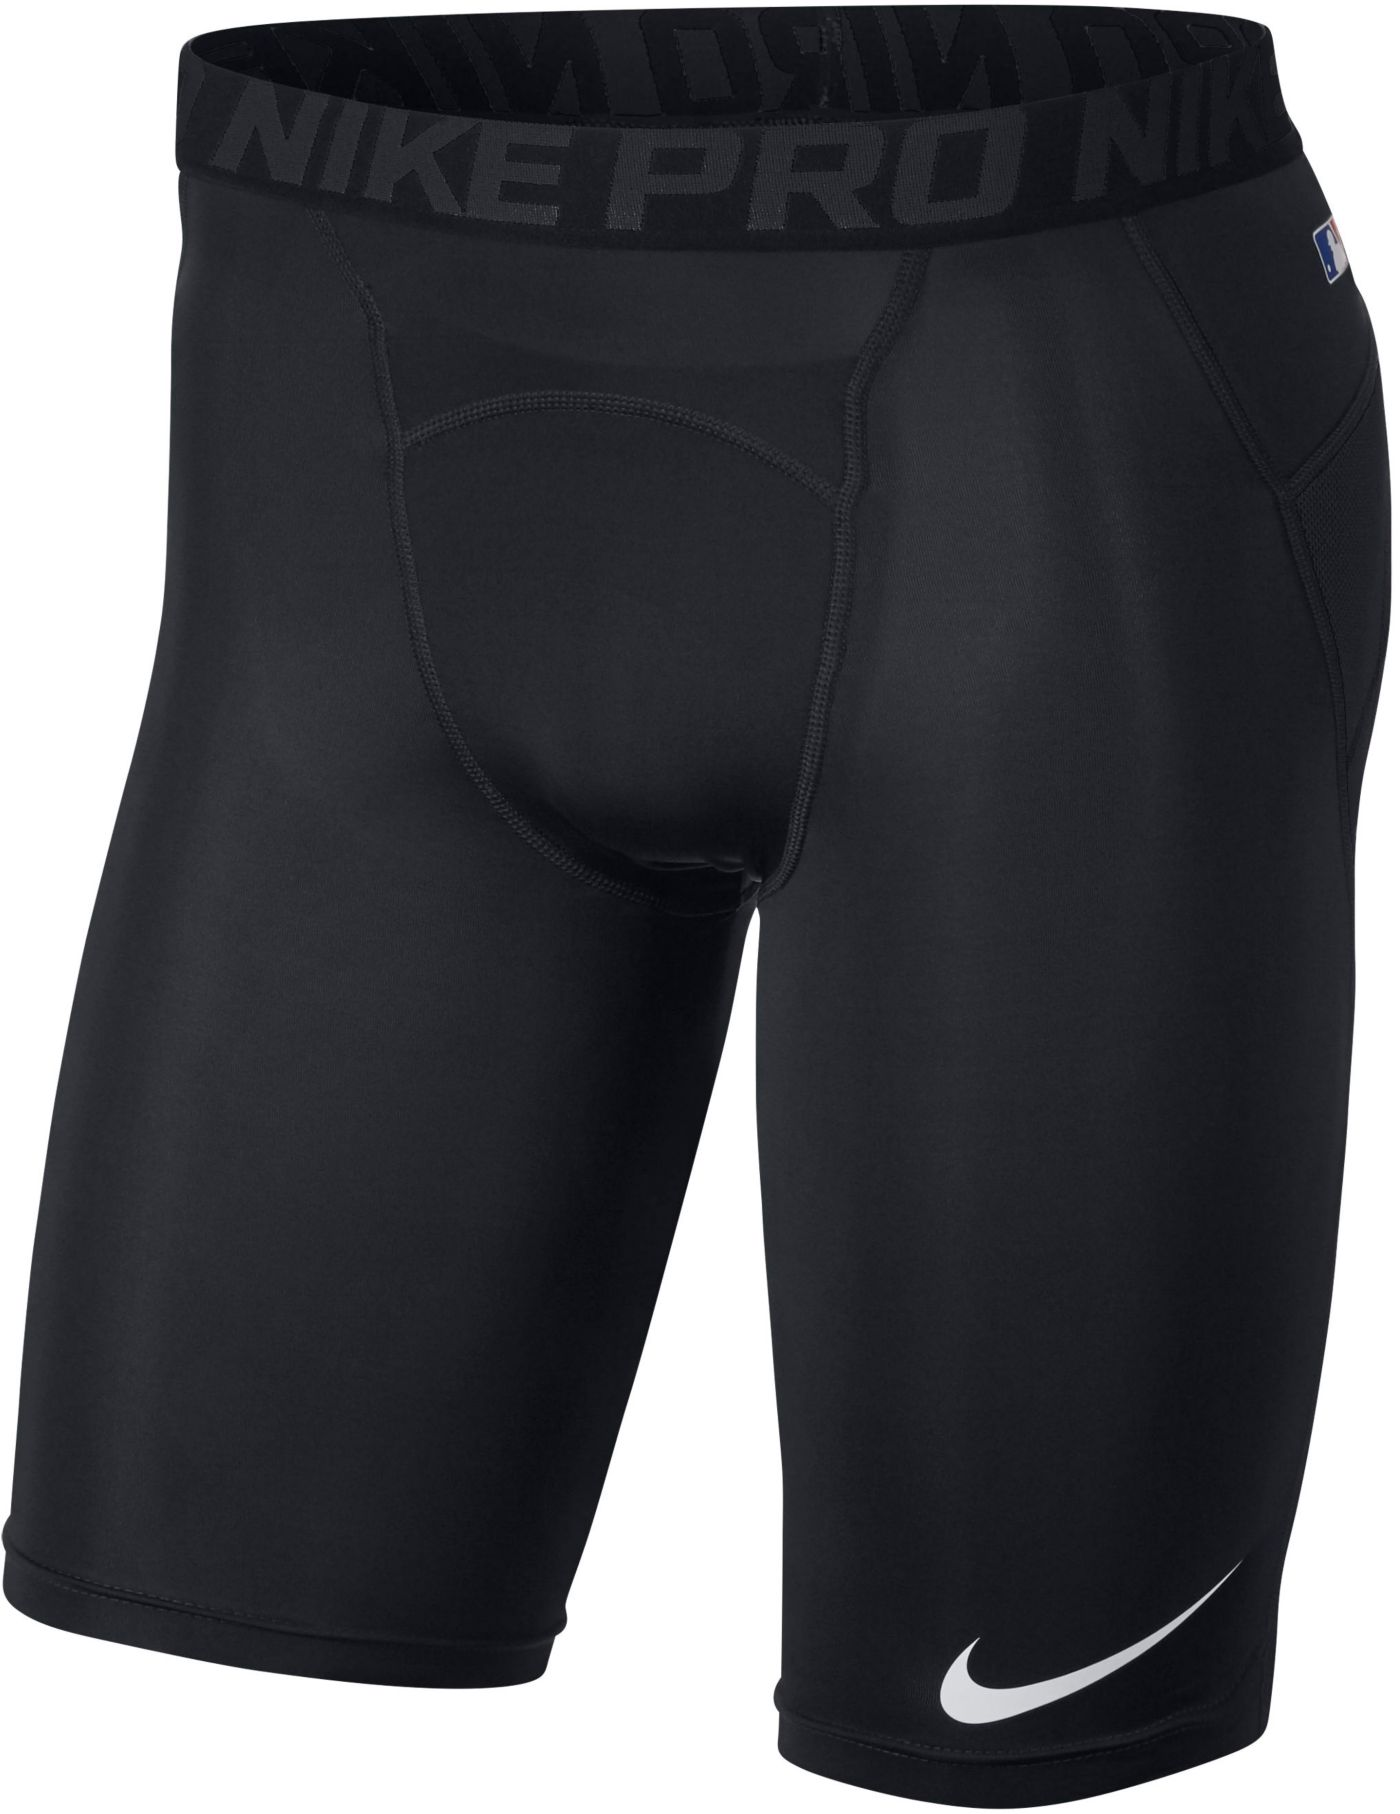 Nike Boys' Pro Heist Dri-FIT Baseball Sliding Shorts